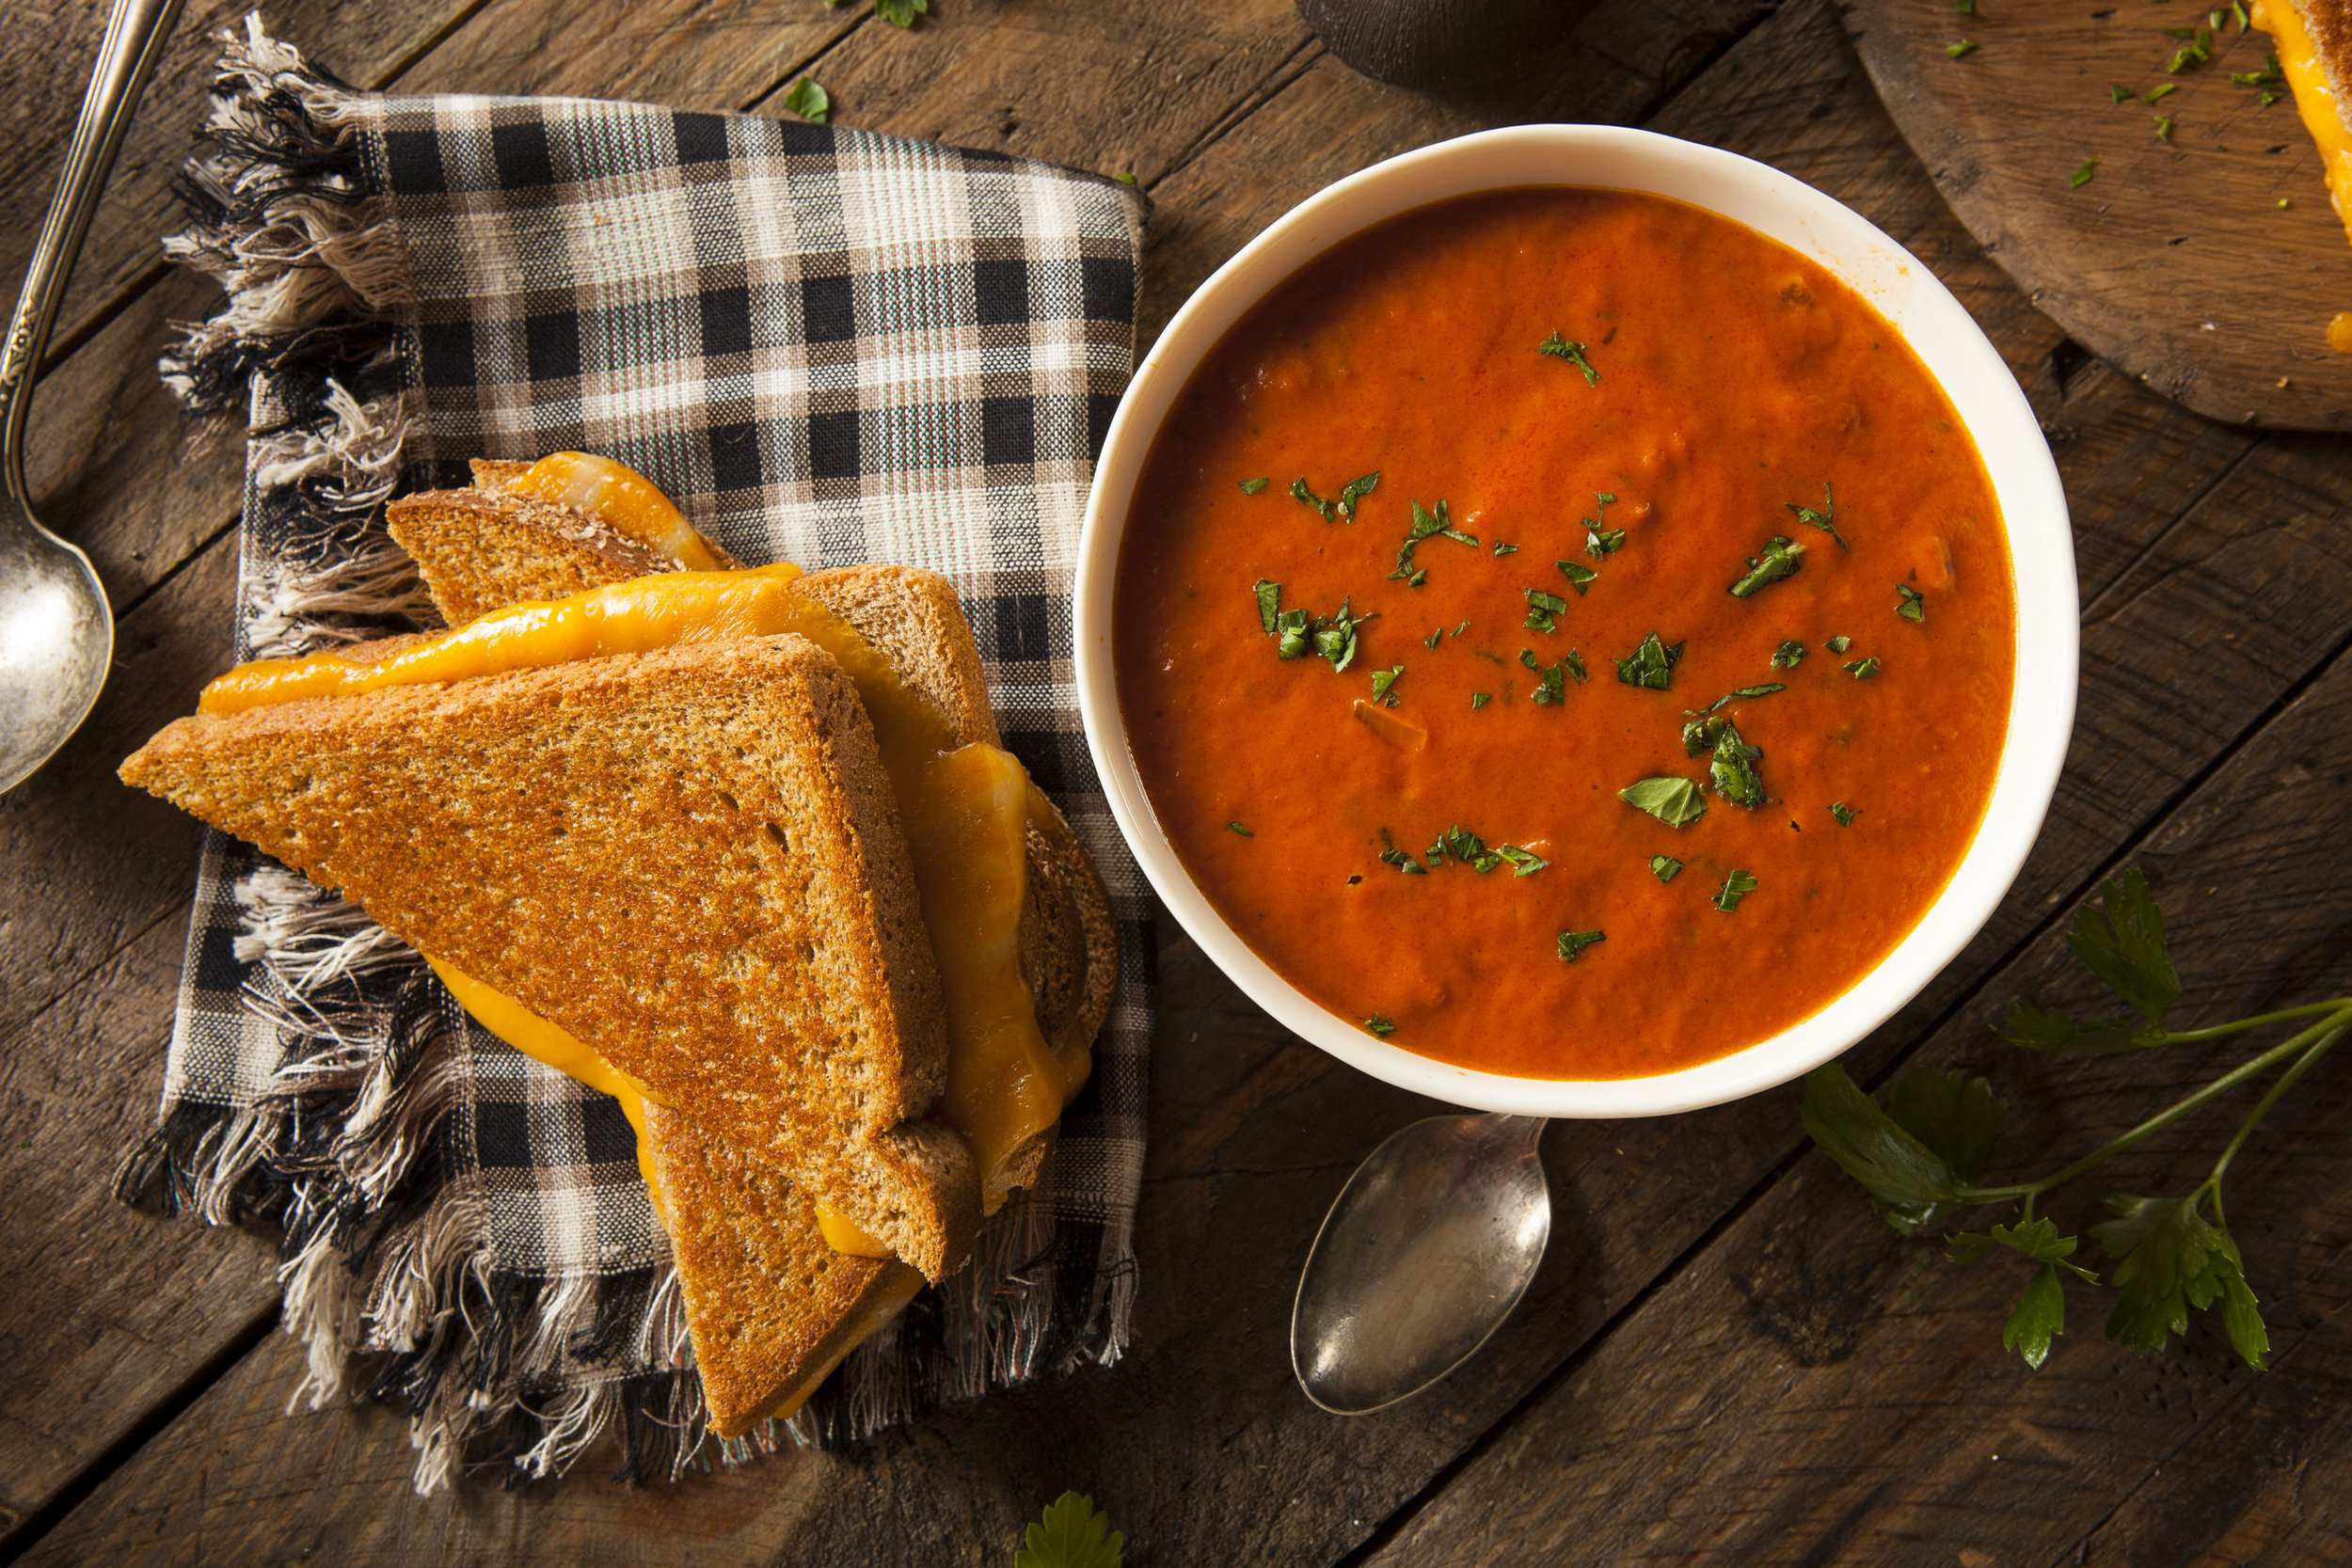 grilled cheese tomato soup.jpg